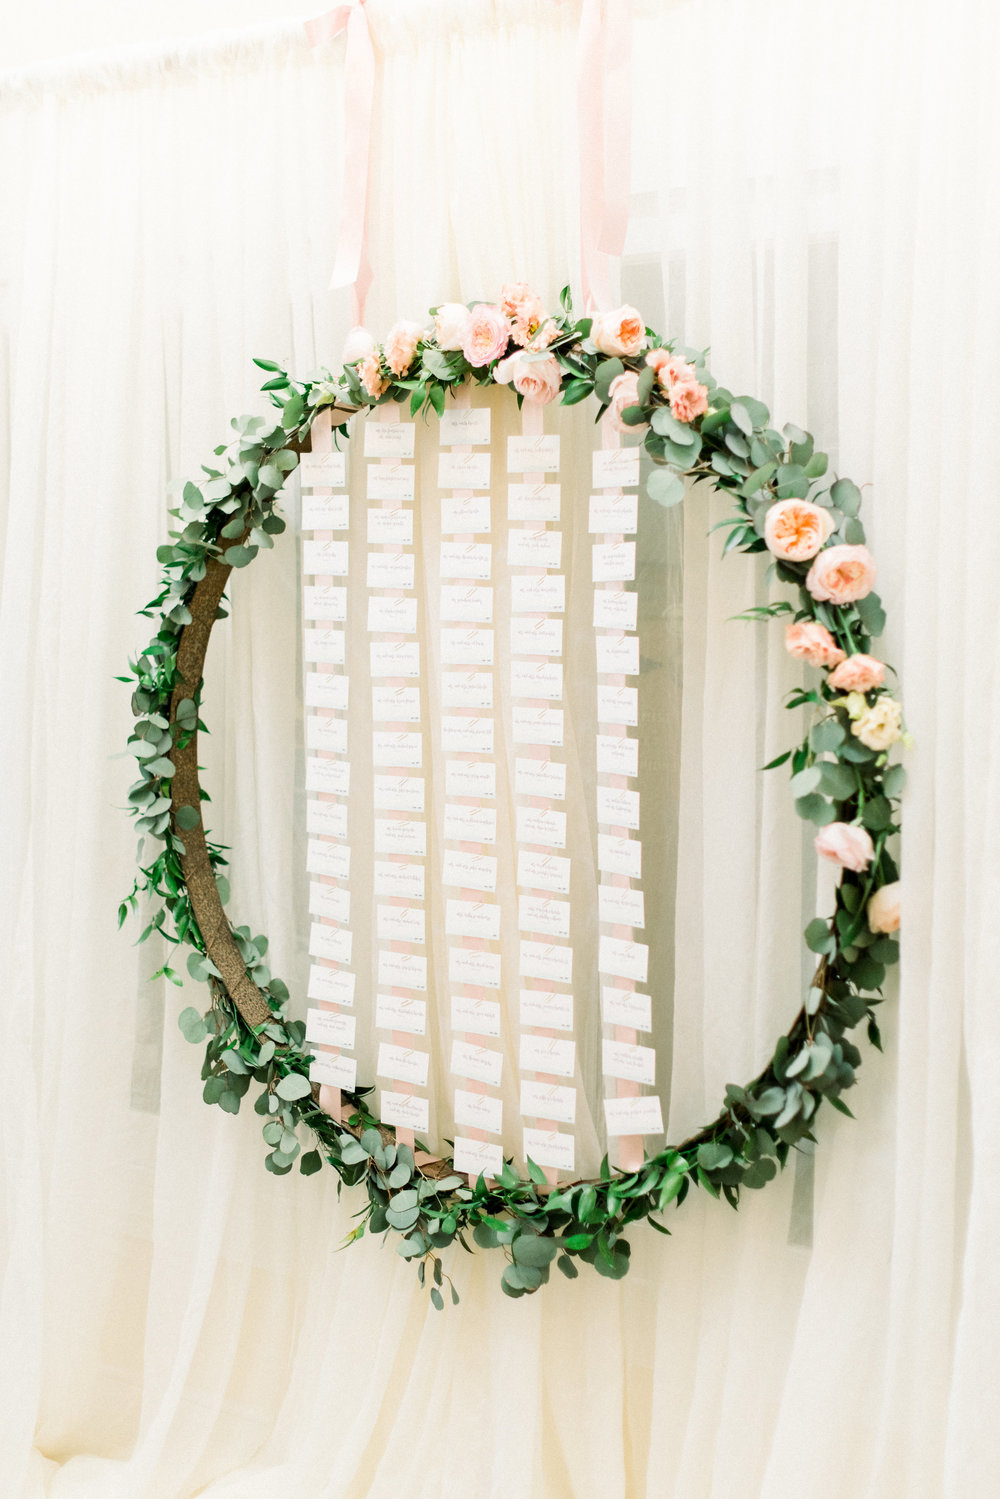 Avalon Wedding, Escort Cards, Seating Assignment, Beach Wedding, Greenery Wedding, Blush Wedding